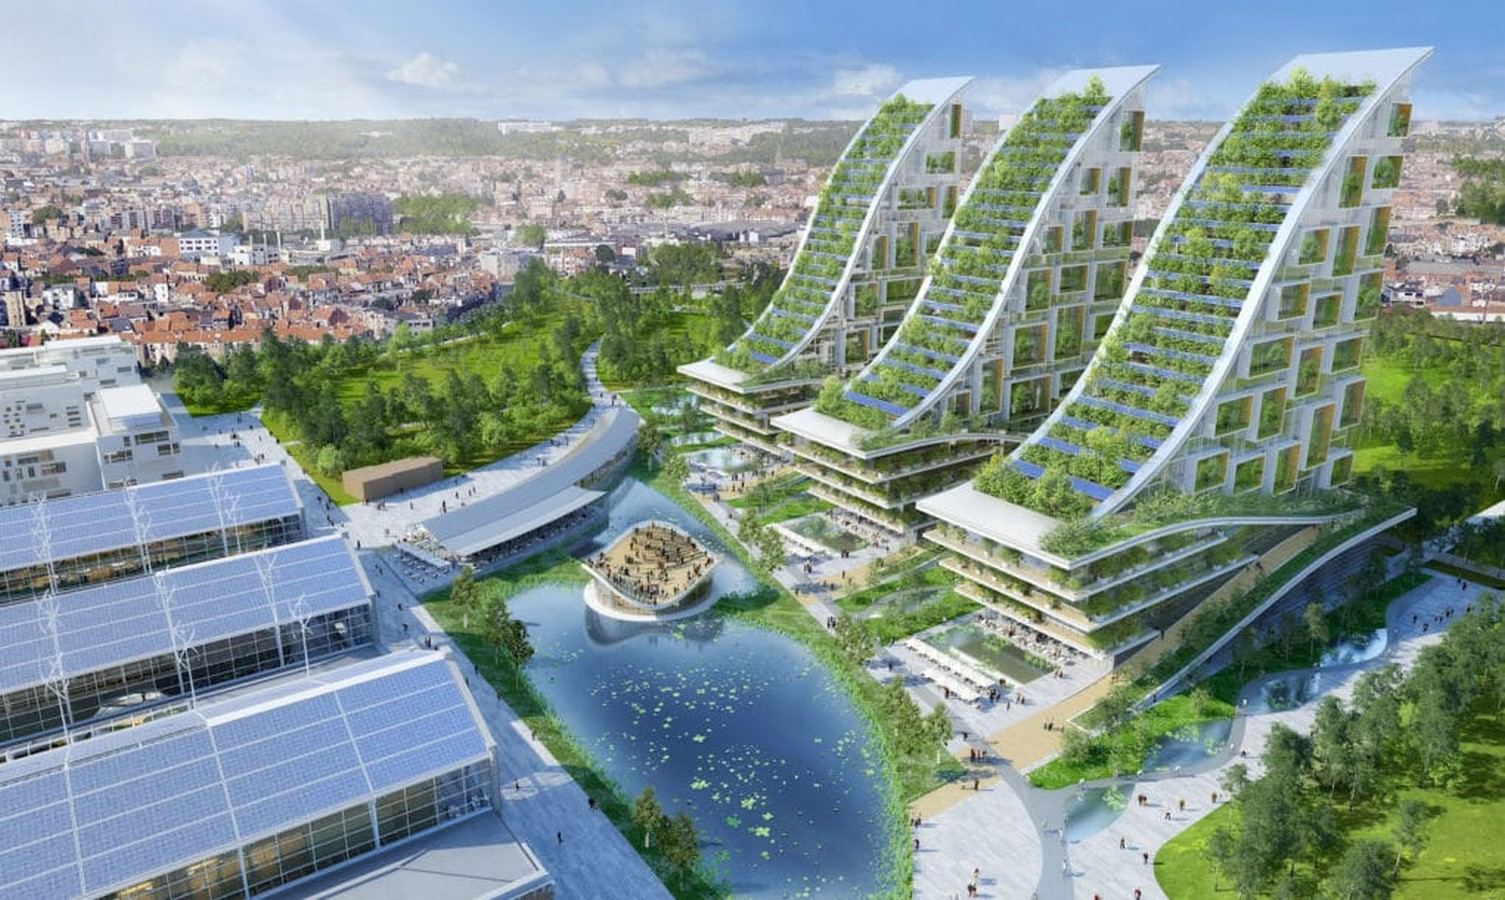 Can biomimicry be executed at city-wide scale - Sheet1